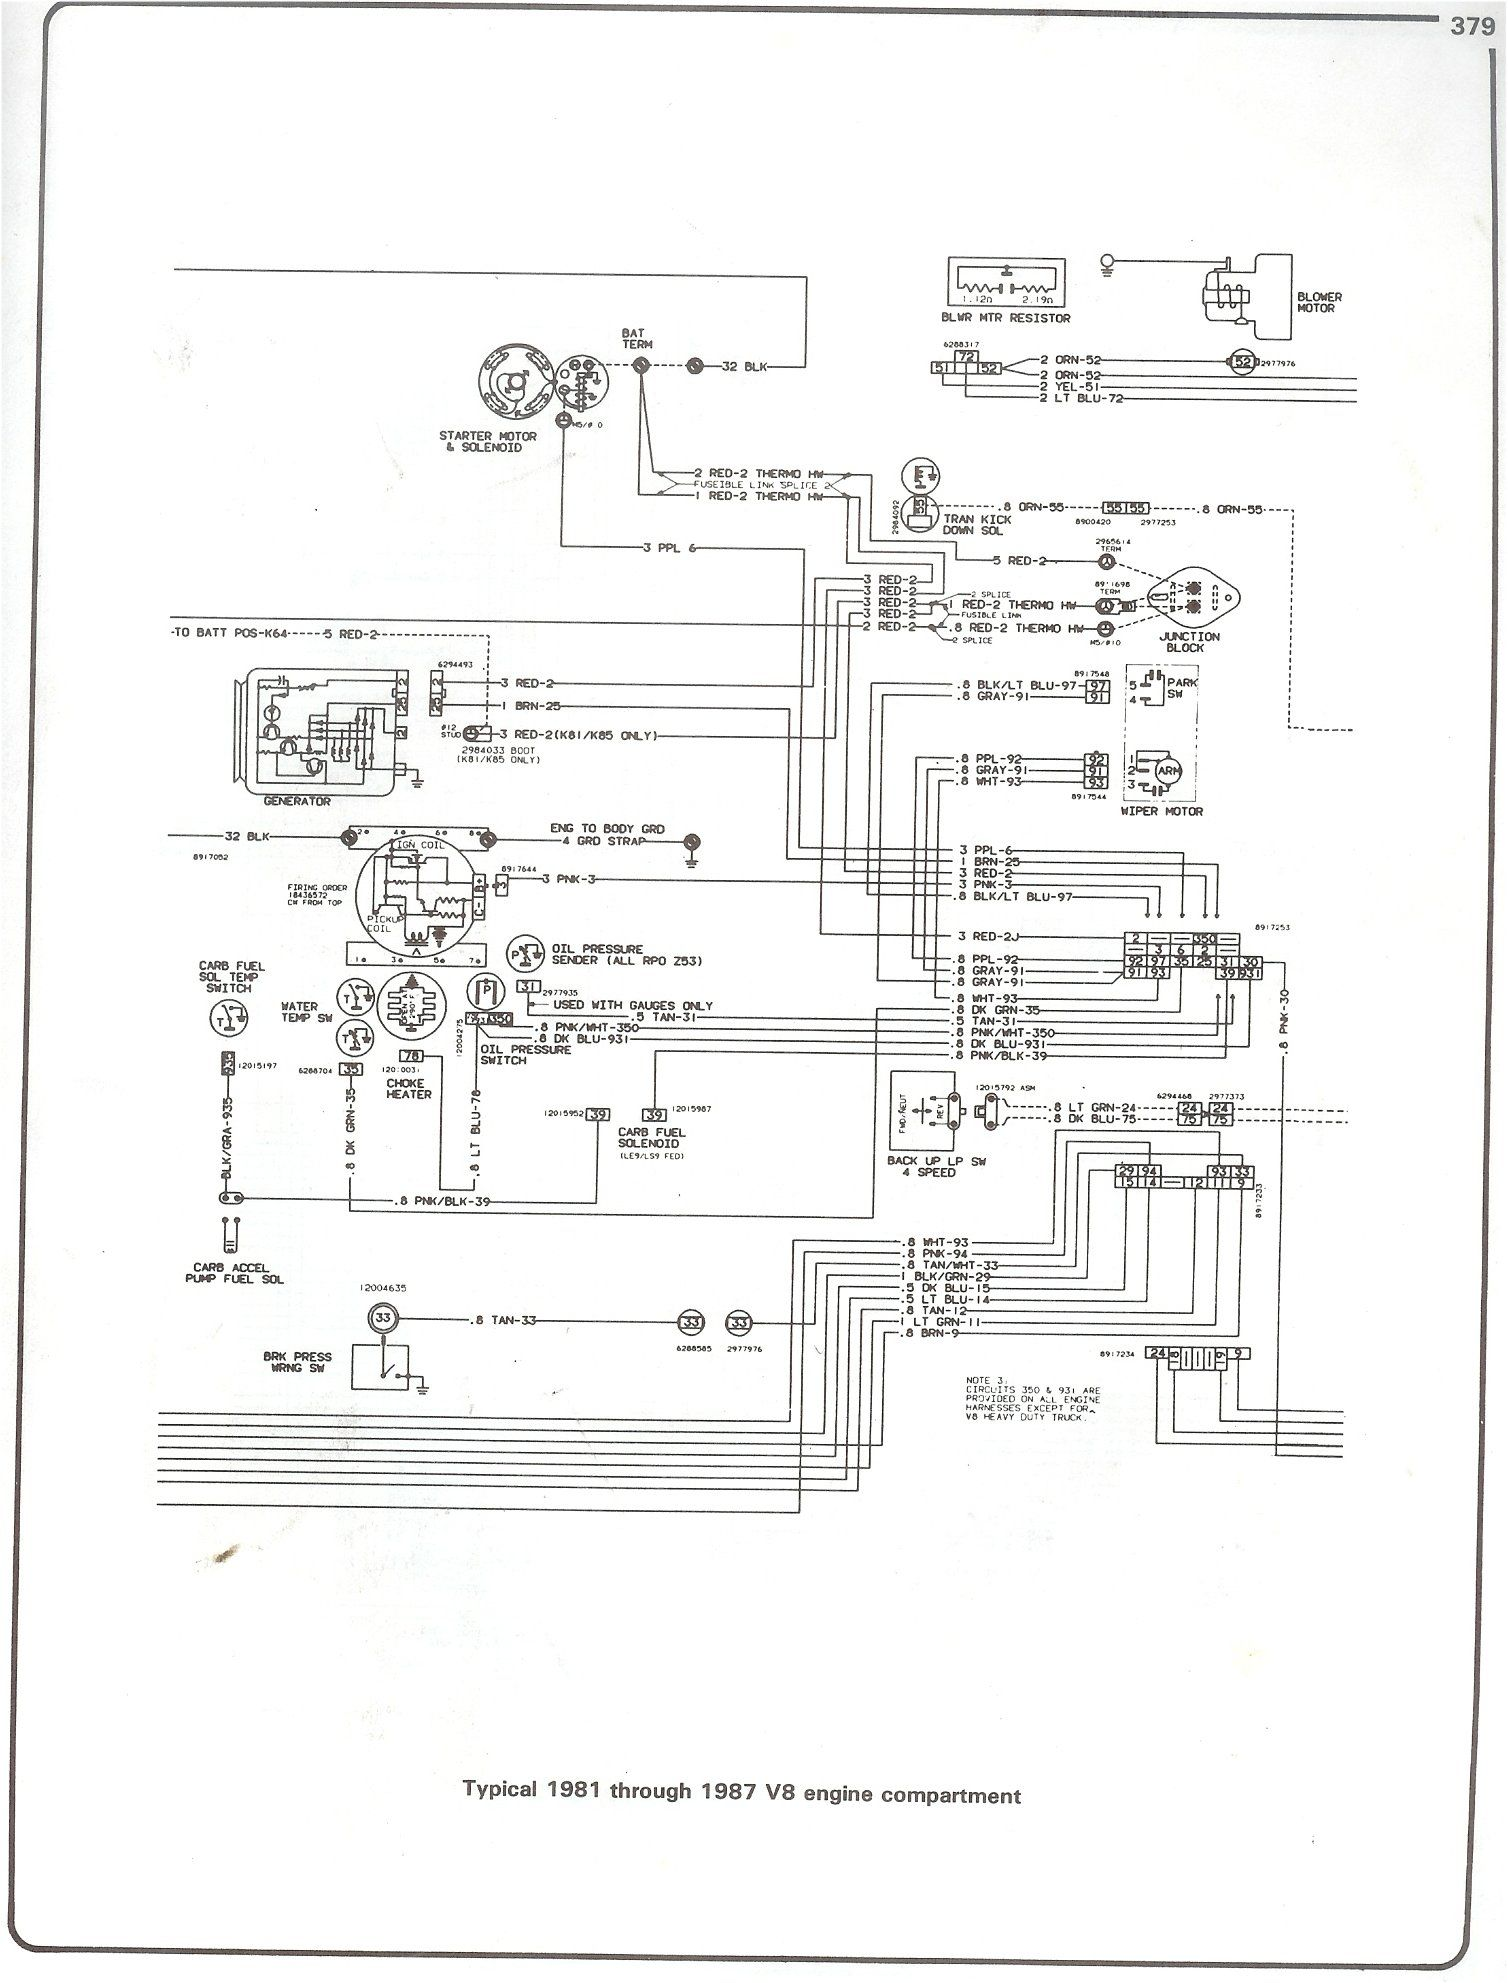 Pin By Malcolm Cail On Projects To Try Pinterest Trucks 2 3 Liter Ford Engine Diagram Wiring Schematic 85 Chevy Truck Http 73 87chevytrucks